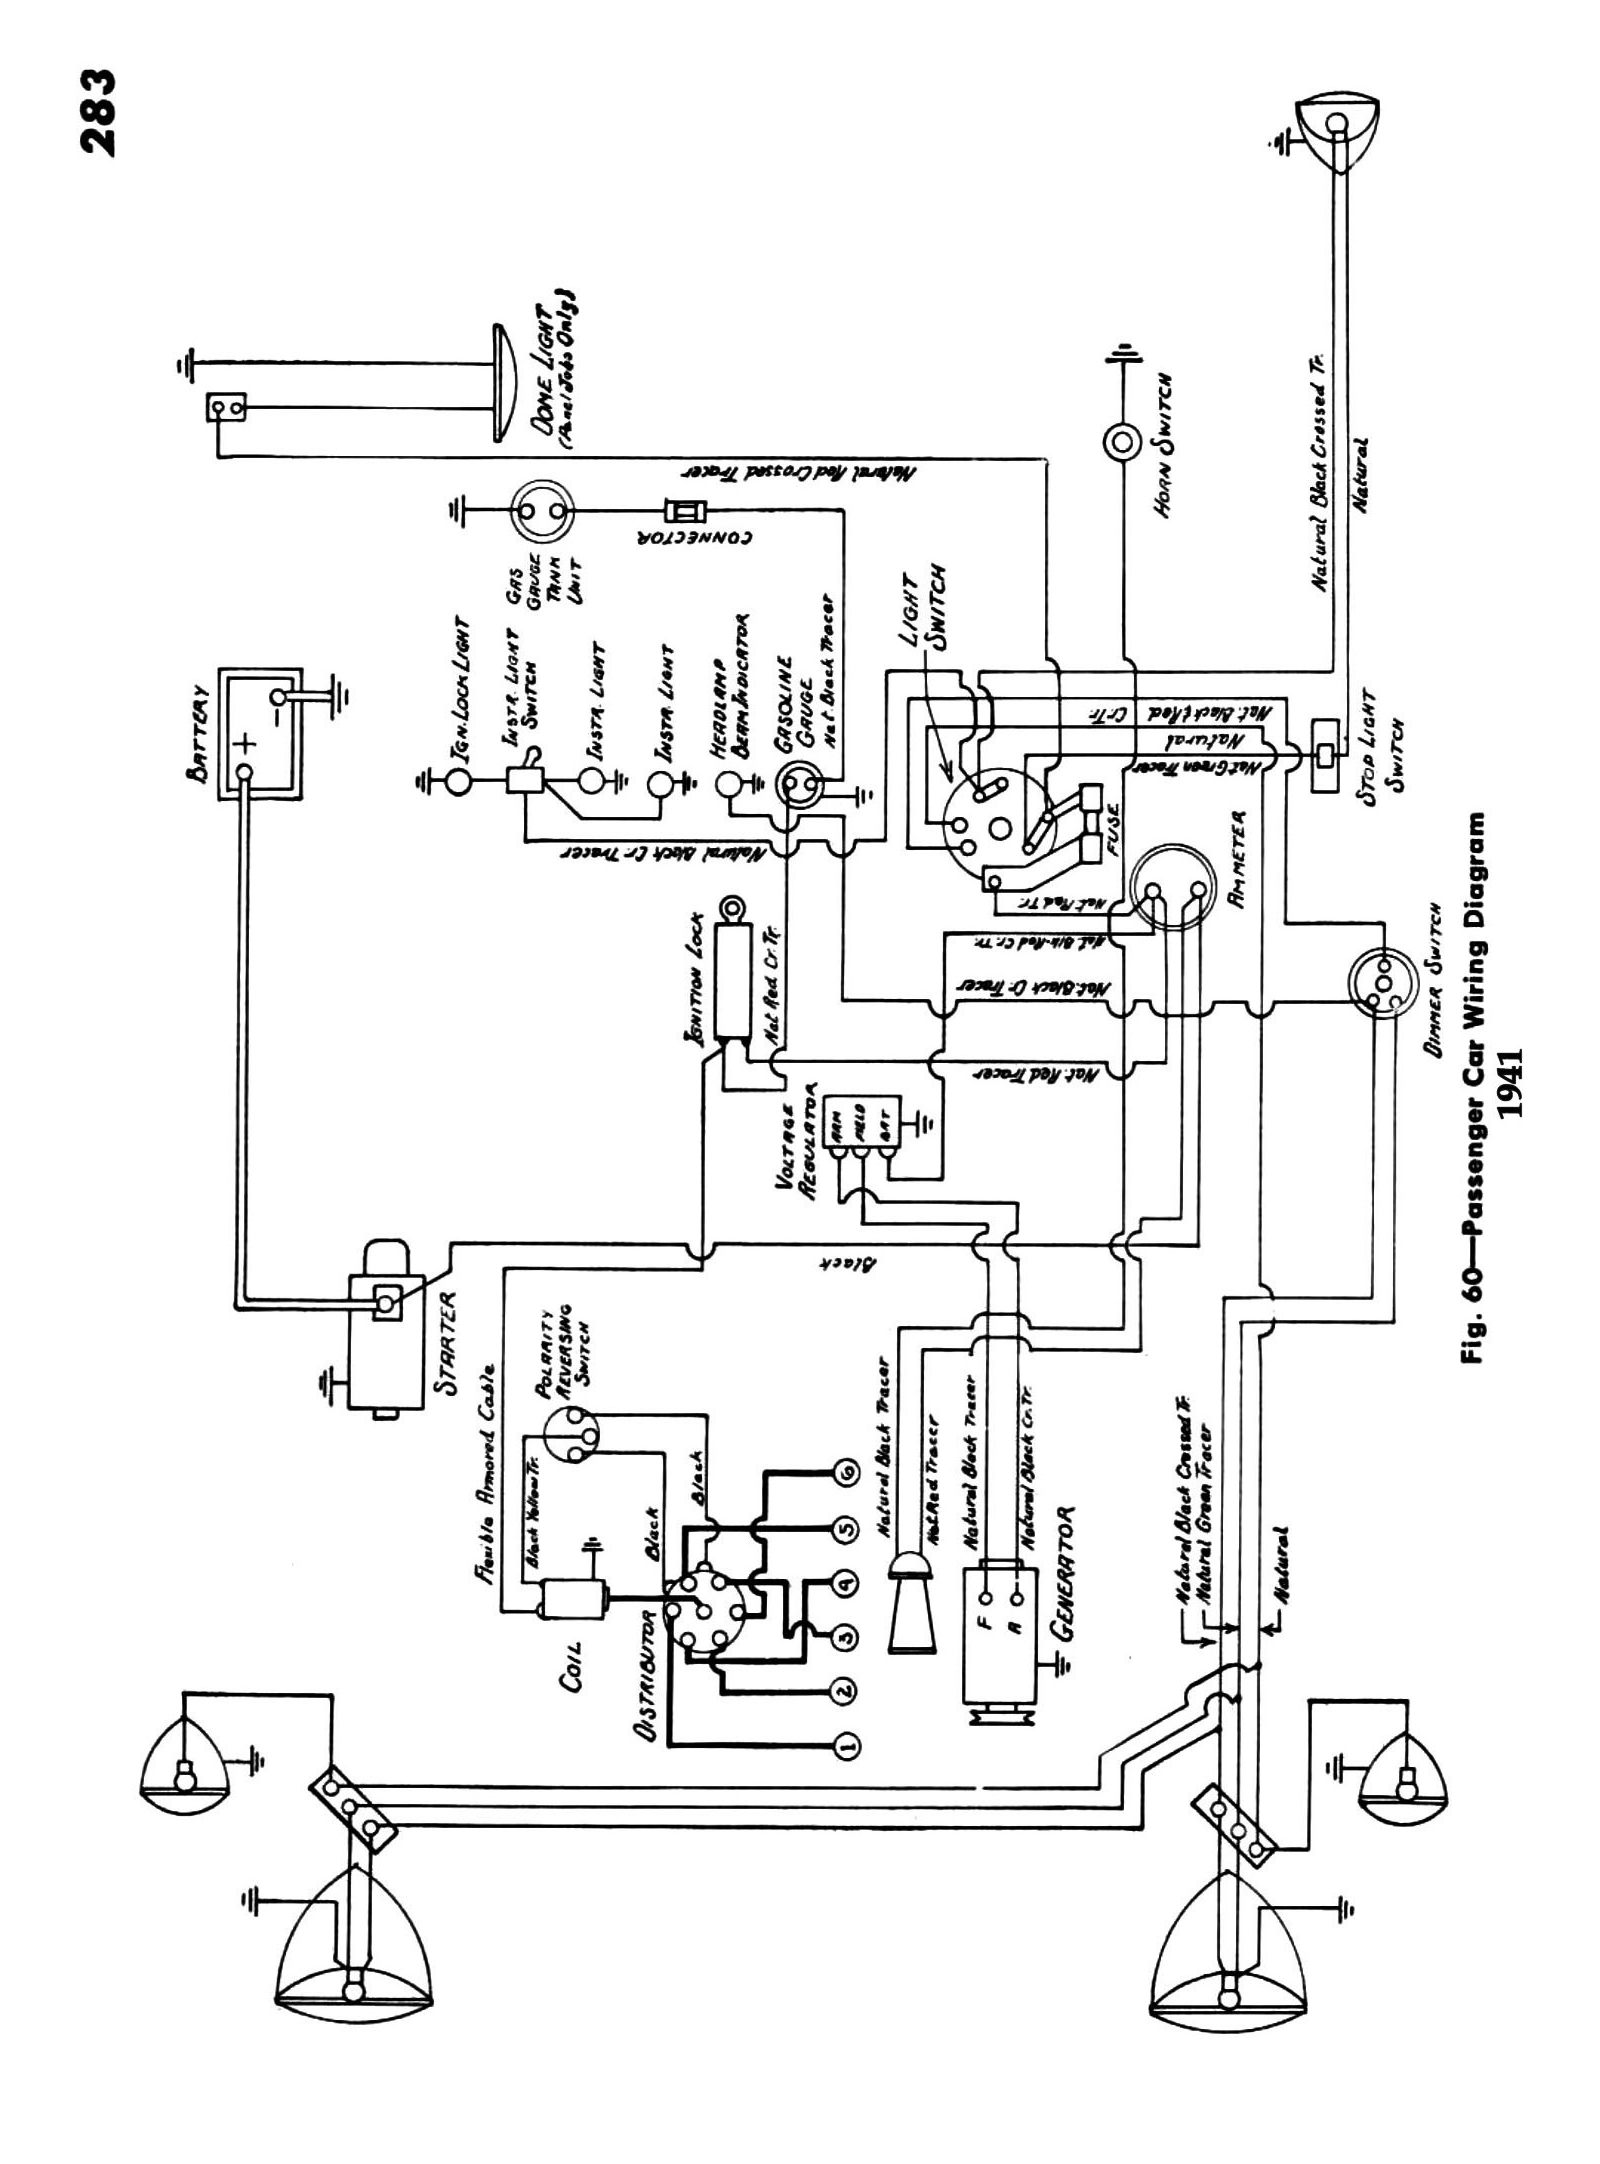 1941 chevy pickup wiring diagram free image wiring diagram engine rh autonomia co